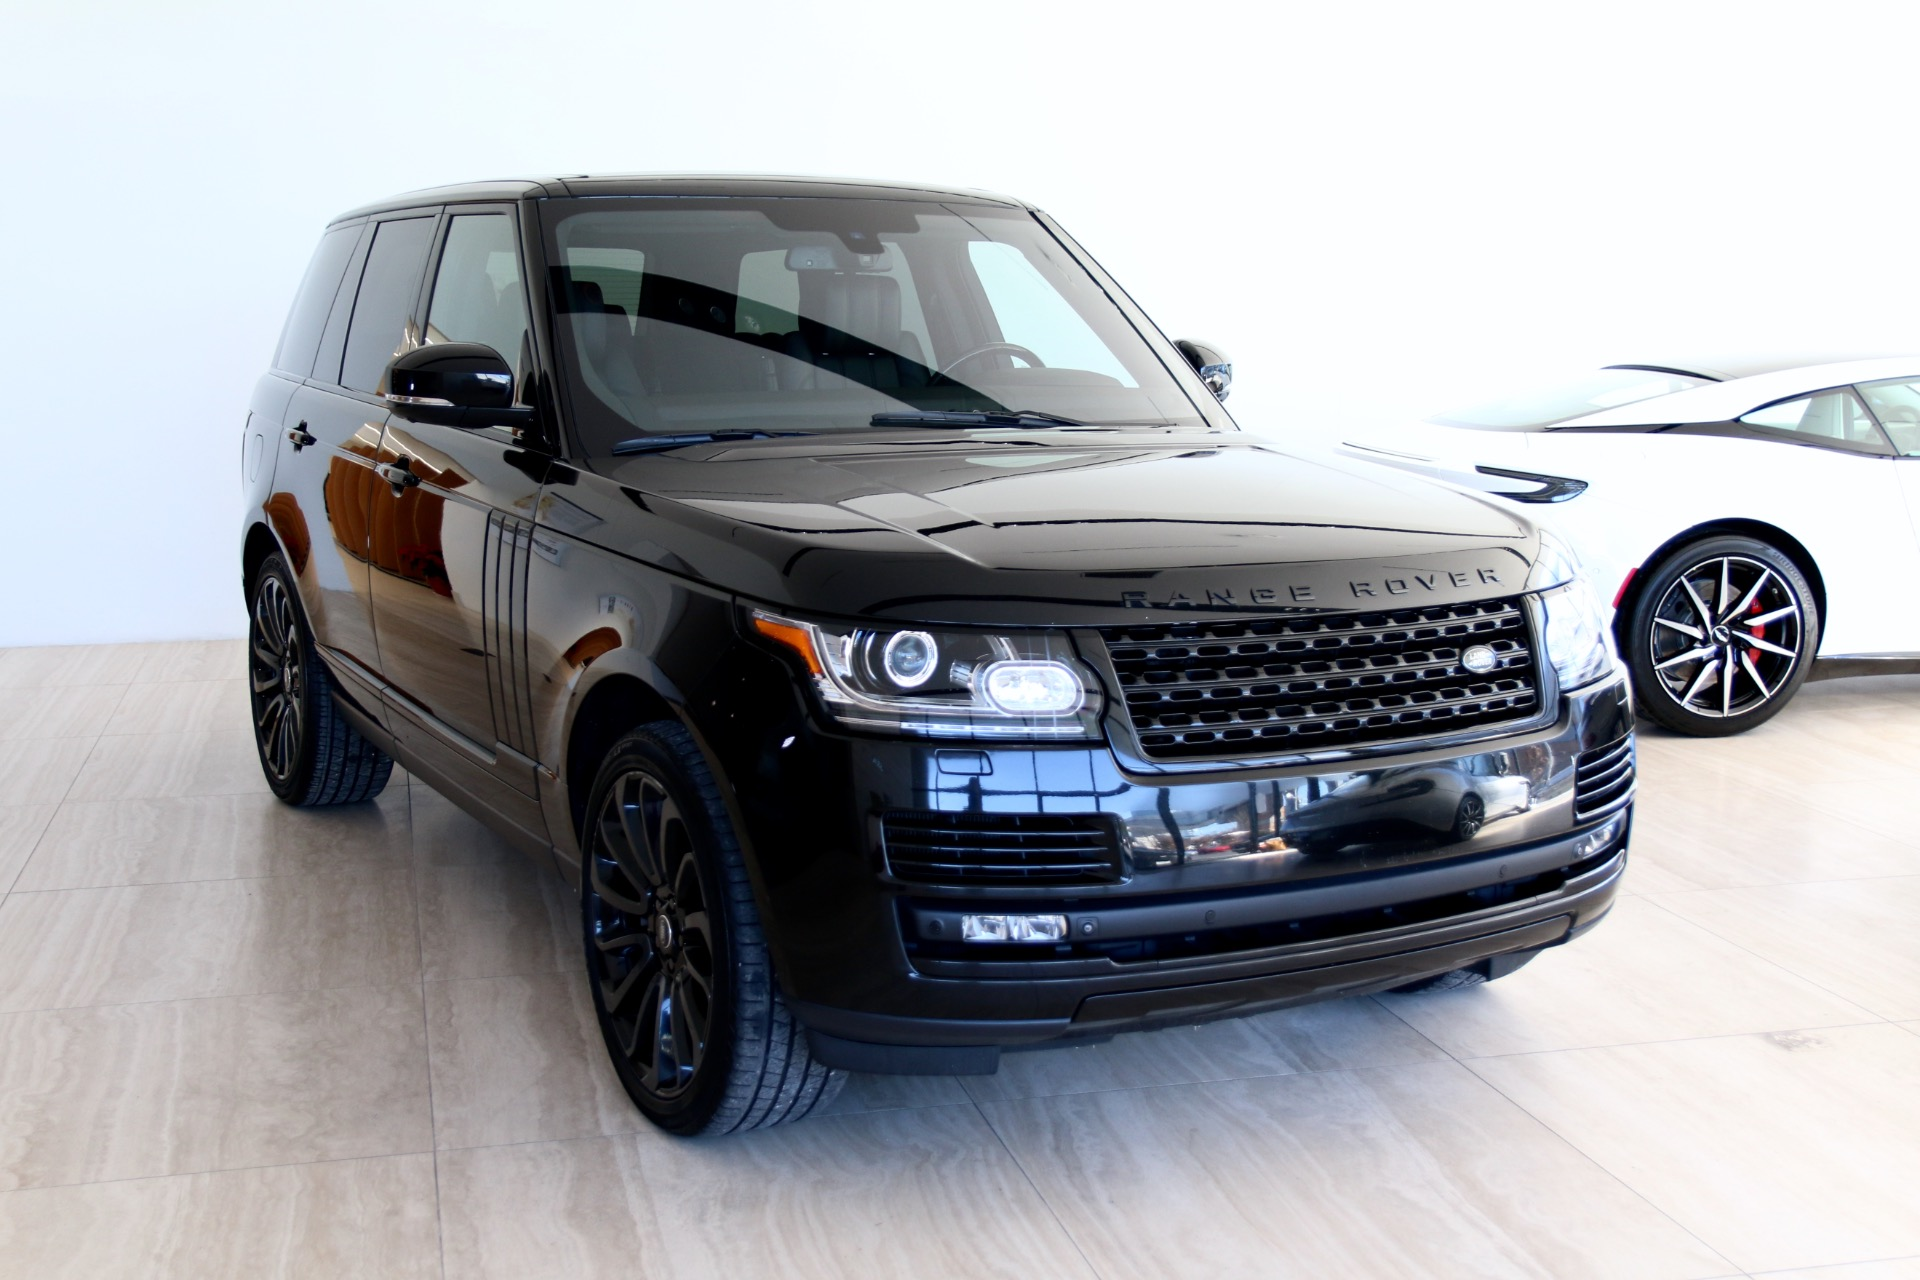 2015 Land Rover Range Rover Supercharged Stock 8N A for